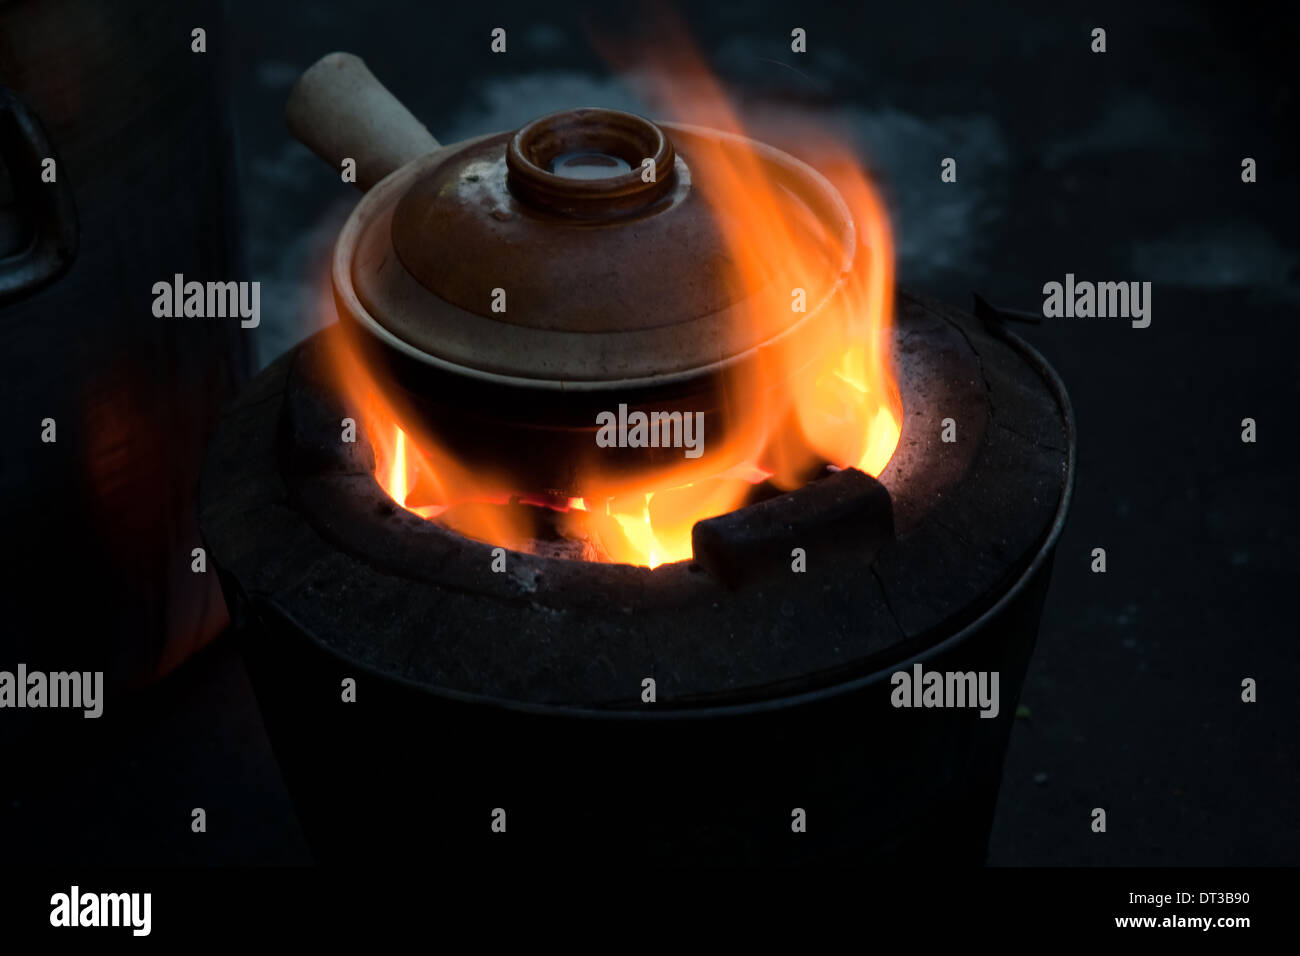 Pot simmering on a small barbeque, Yangon, Myanmar - Stock Image